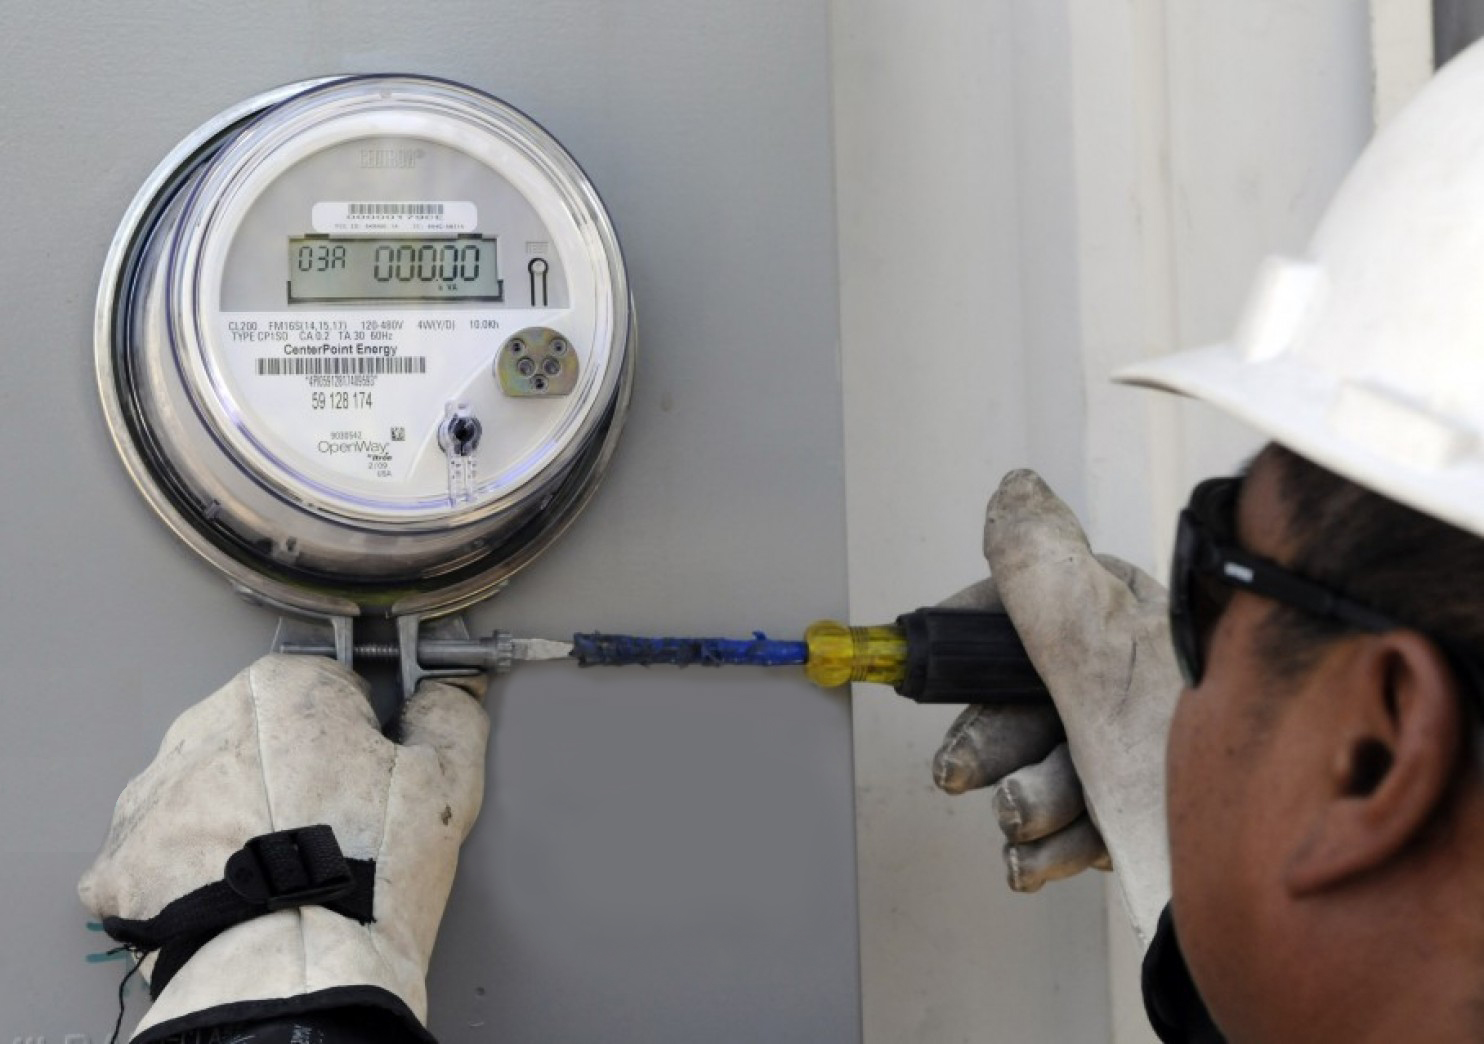 What Makes a Smart Meter Smart?